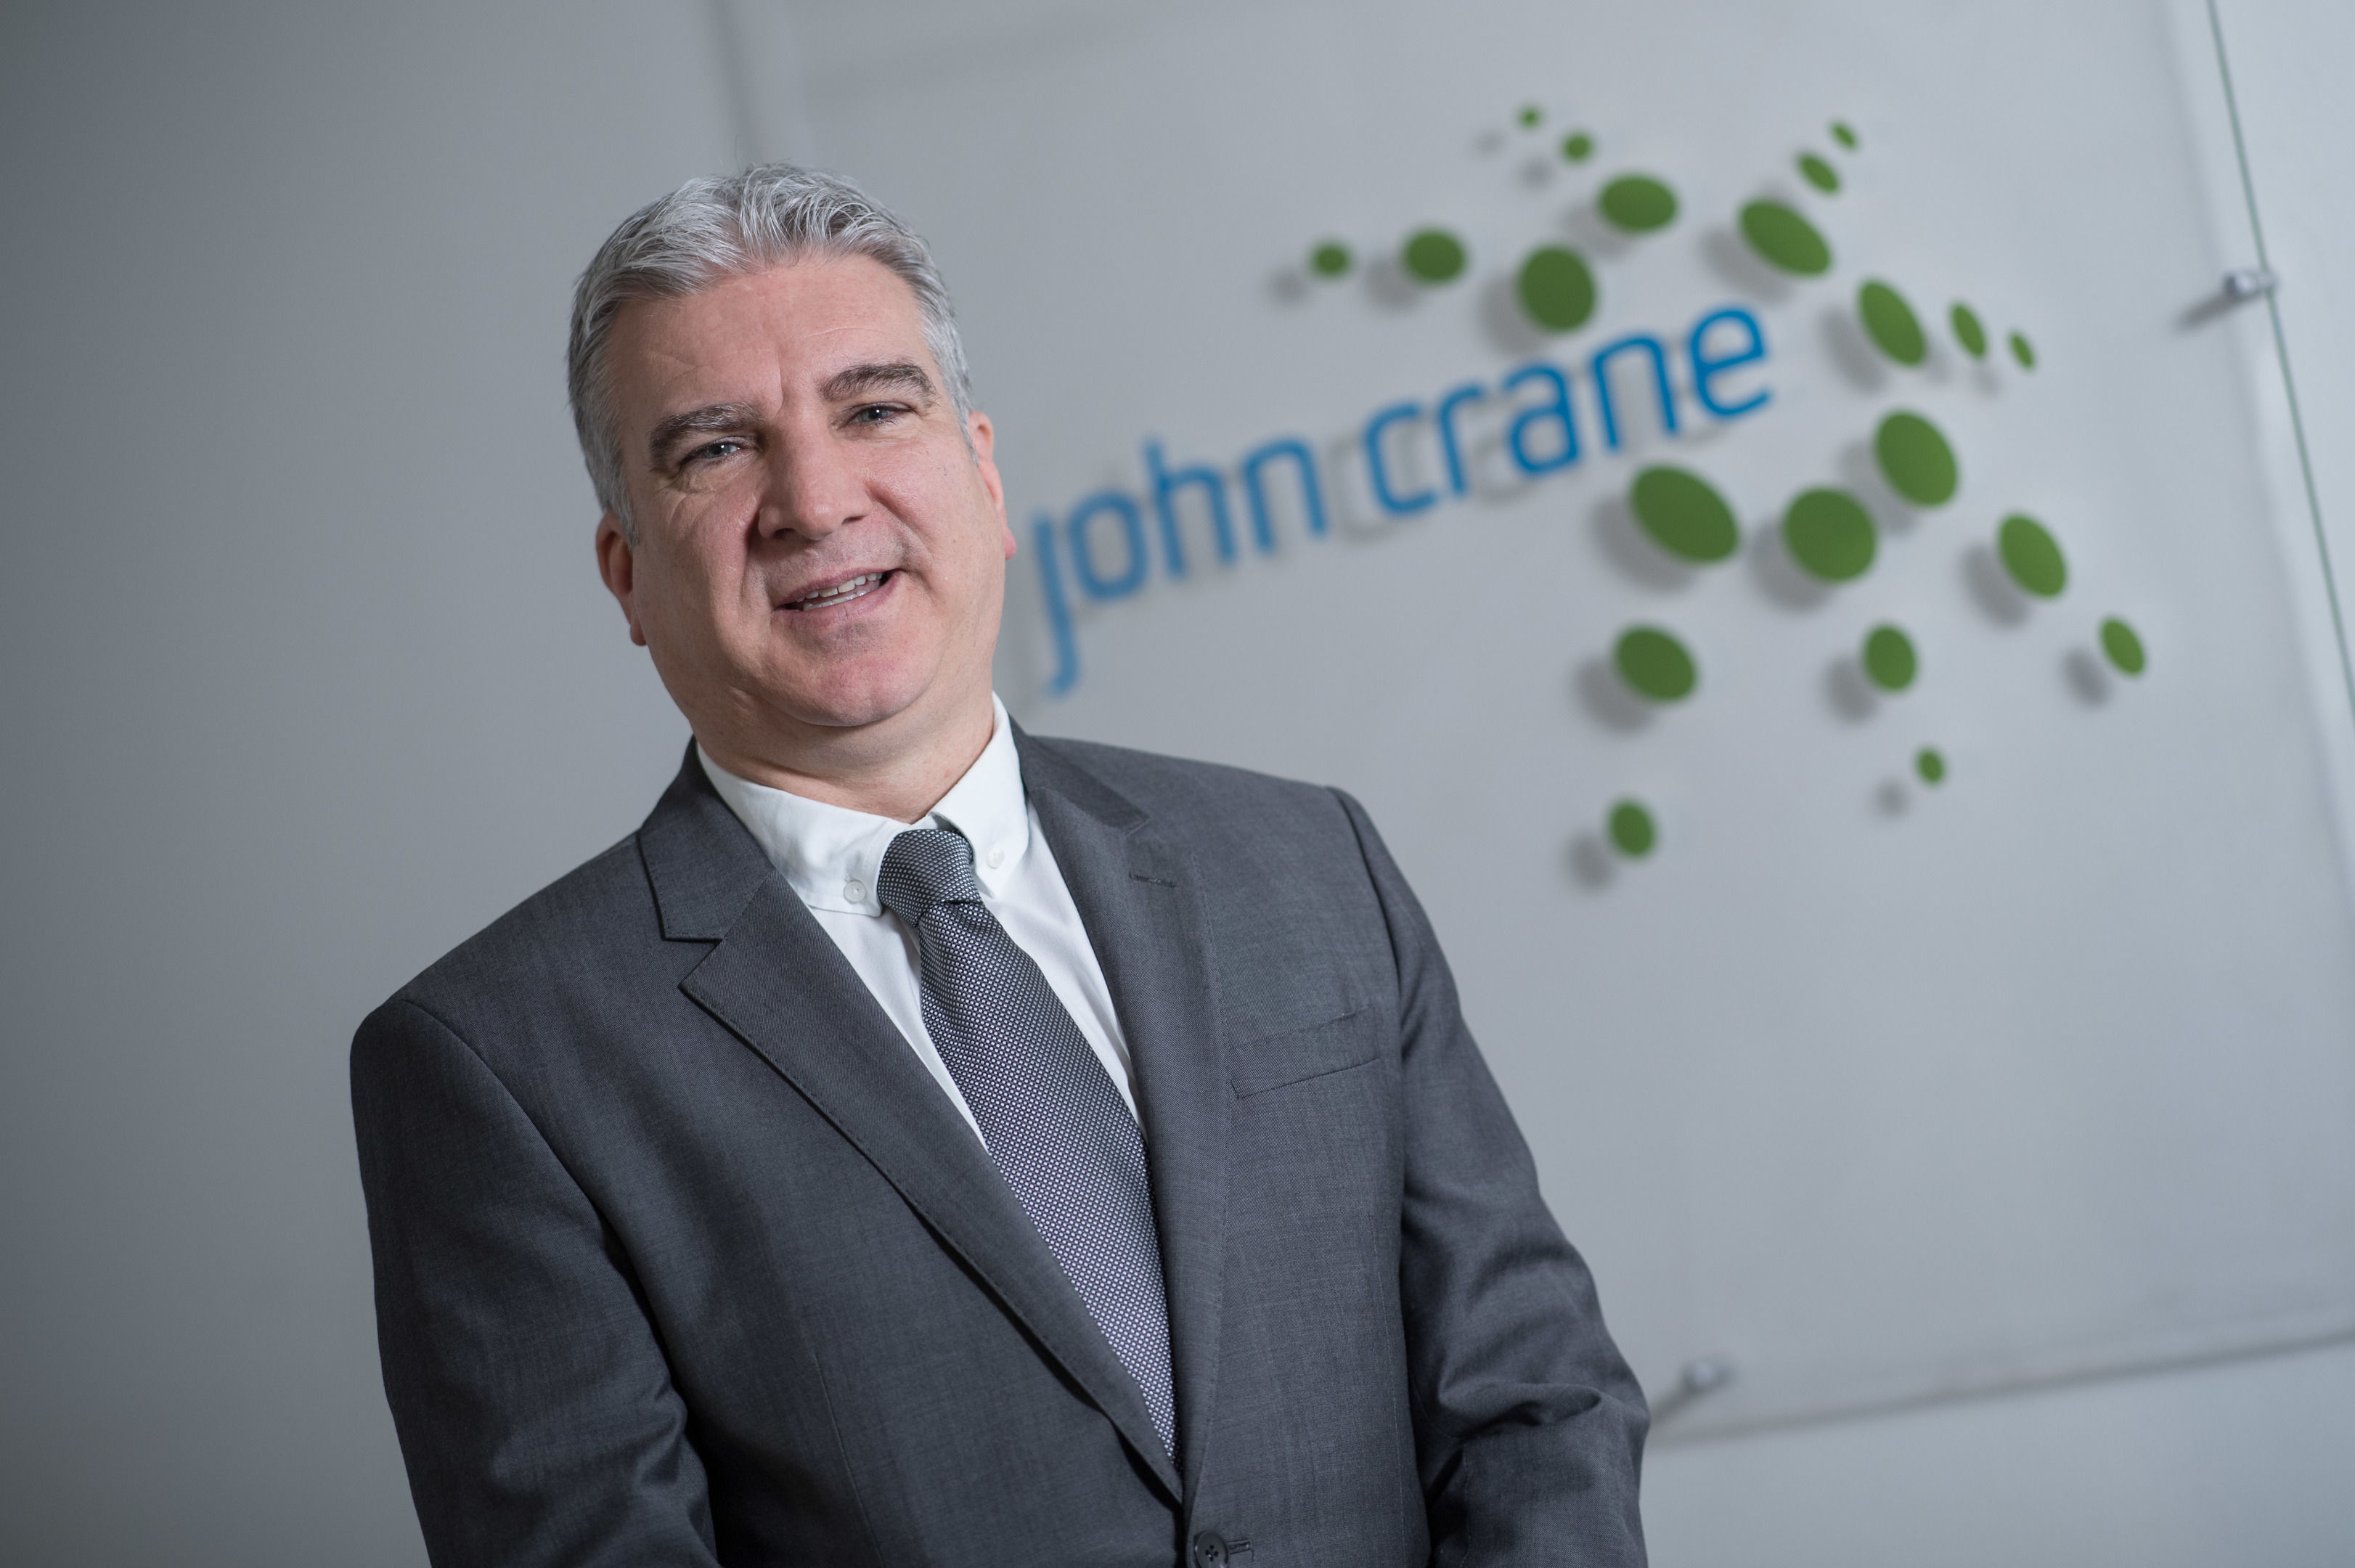 John Morrison, former managing director of John Crane Asset Management Solutions